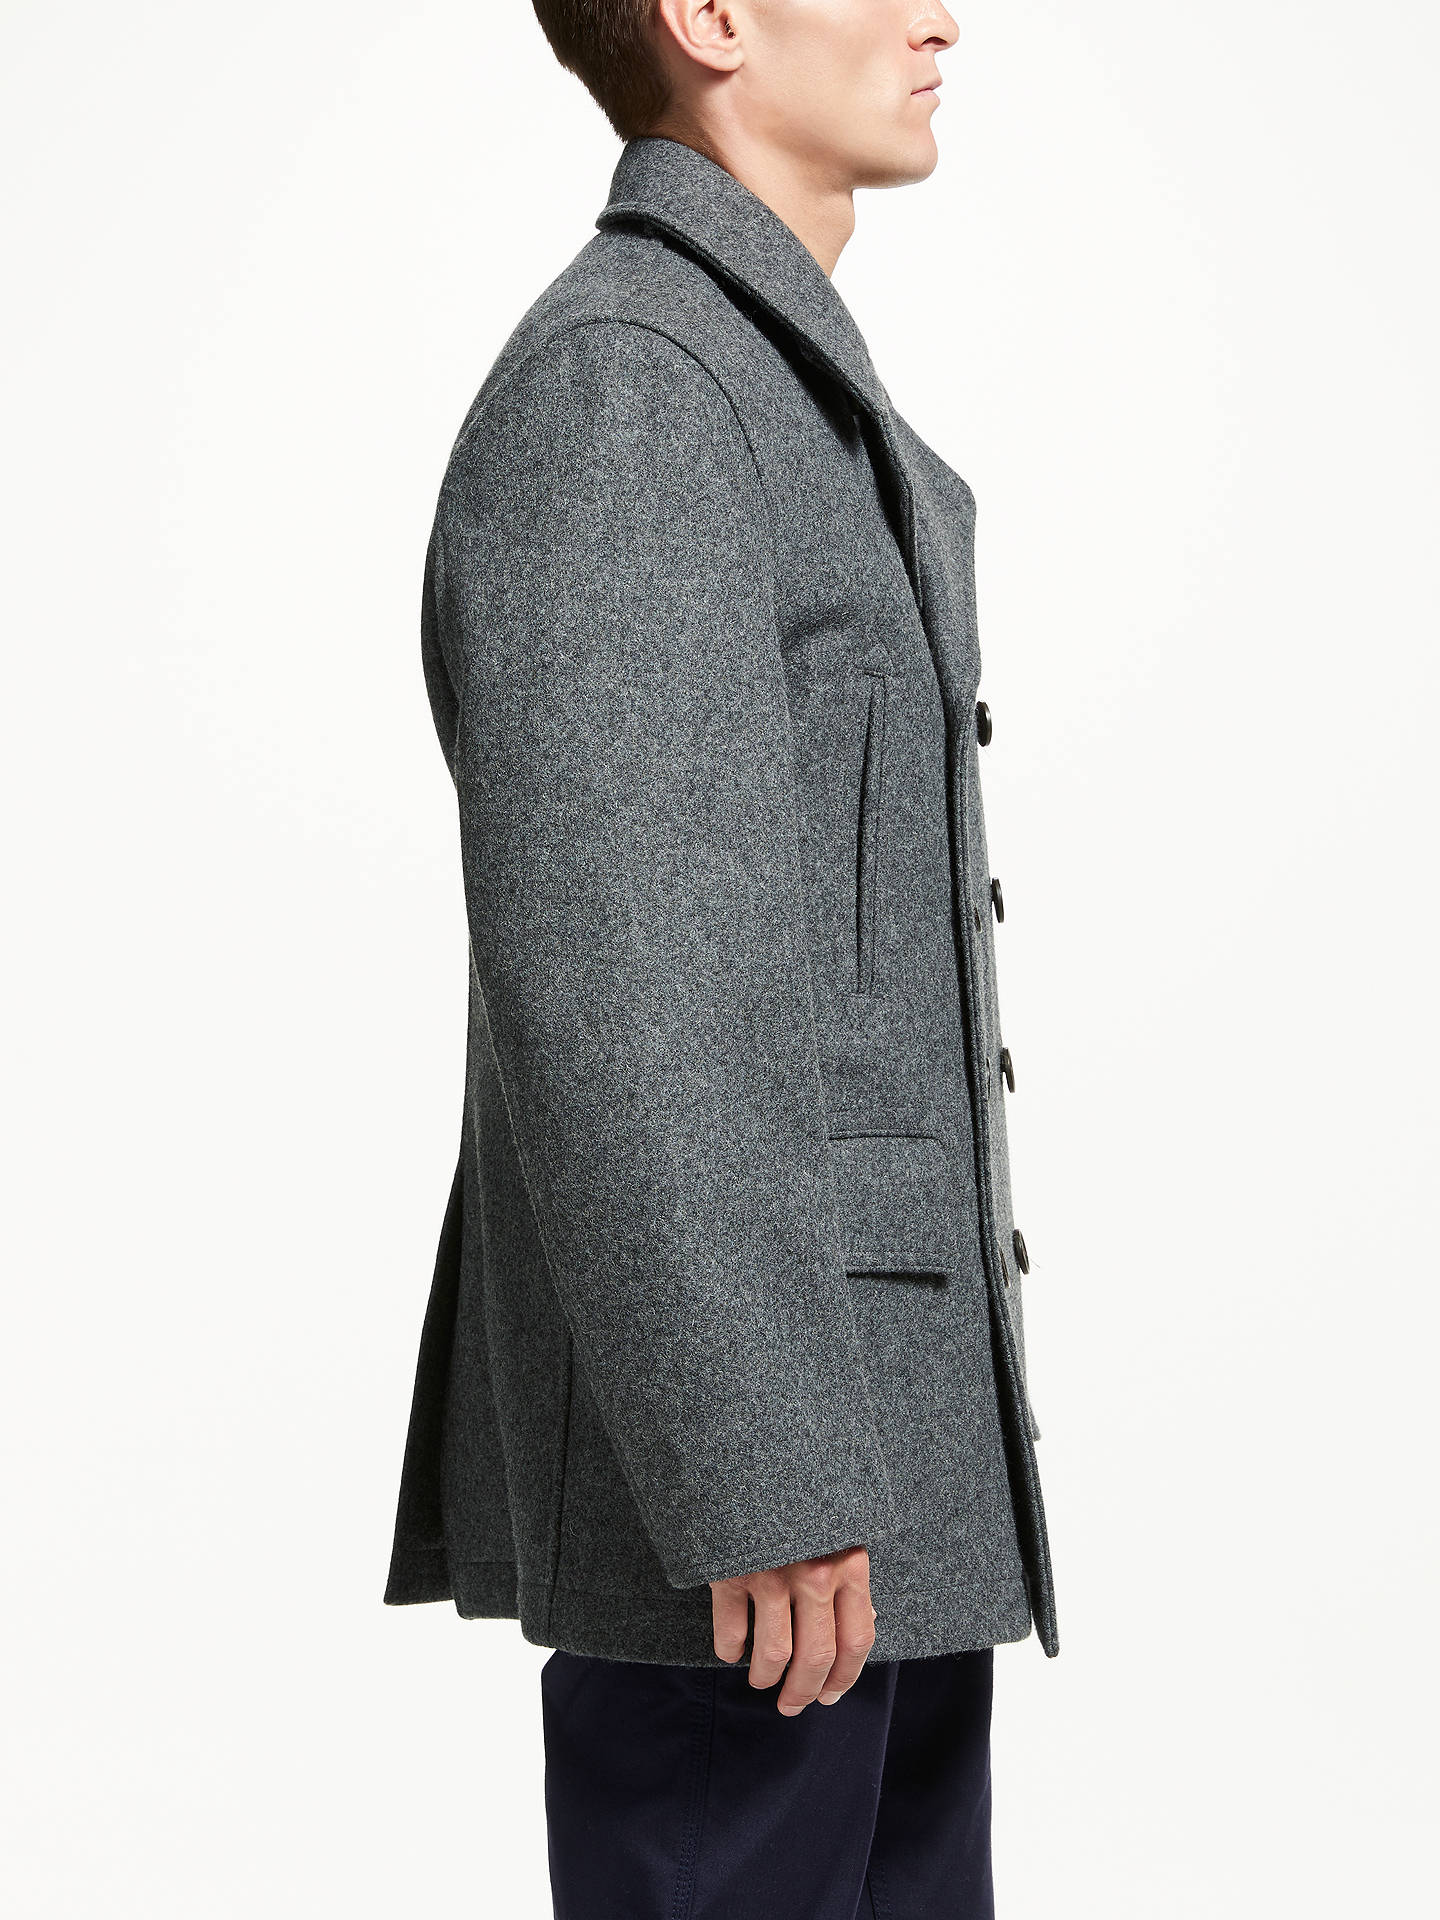 BuyGloverall for John Lewis & Partners Churchill Reefer Coat, Grey, M Online at johnlewis.com